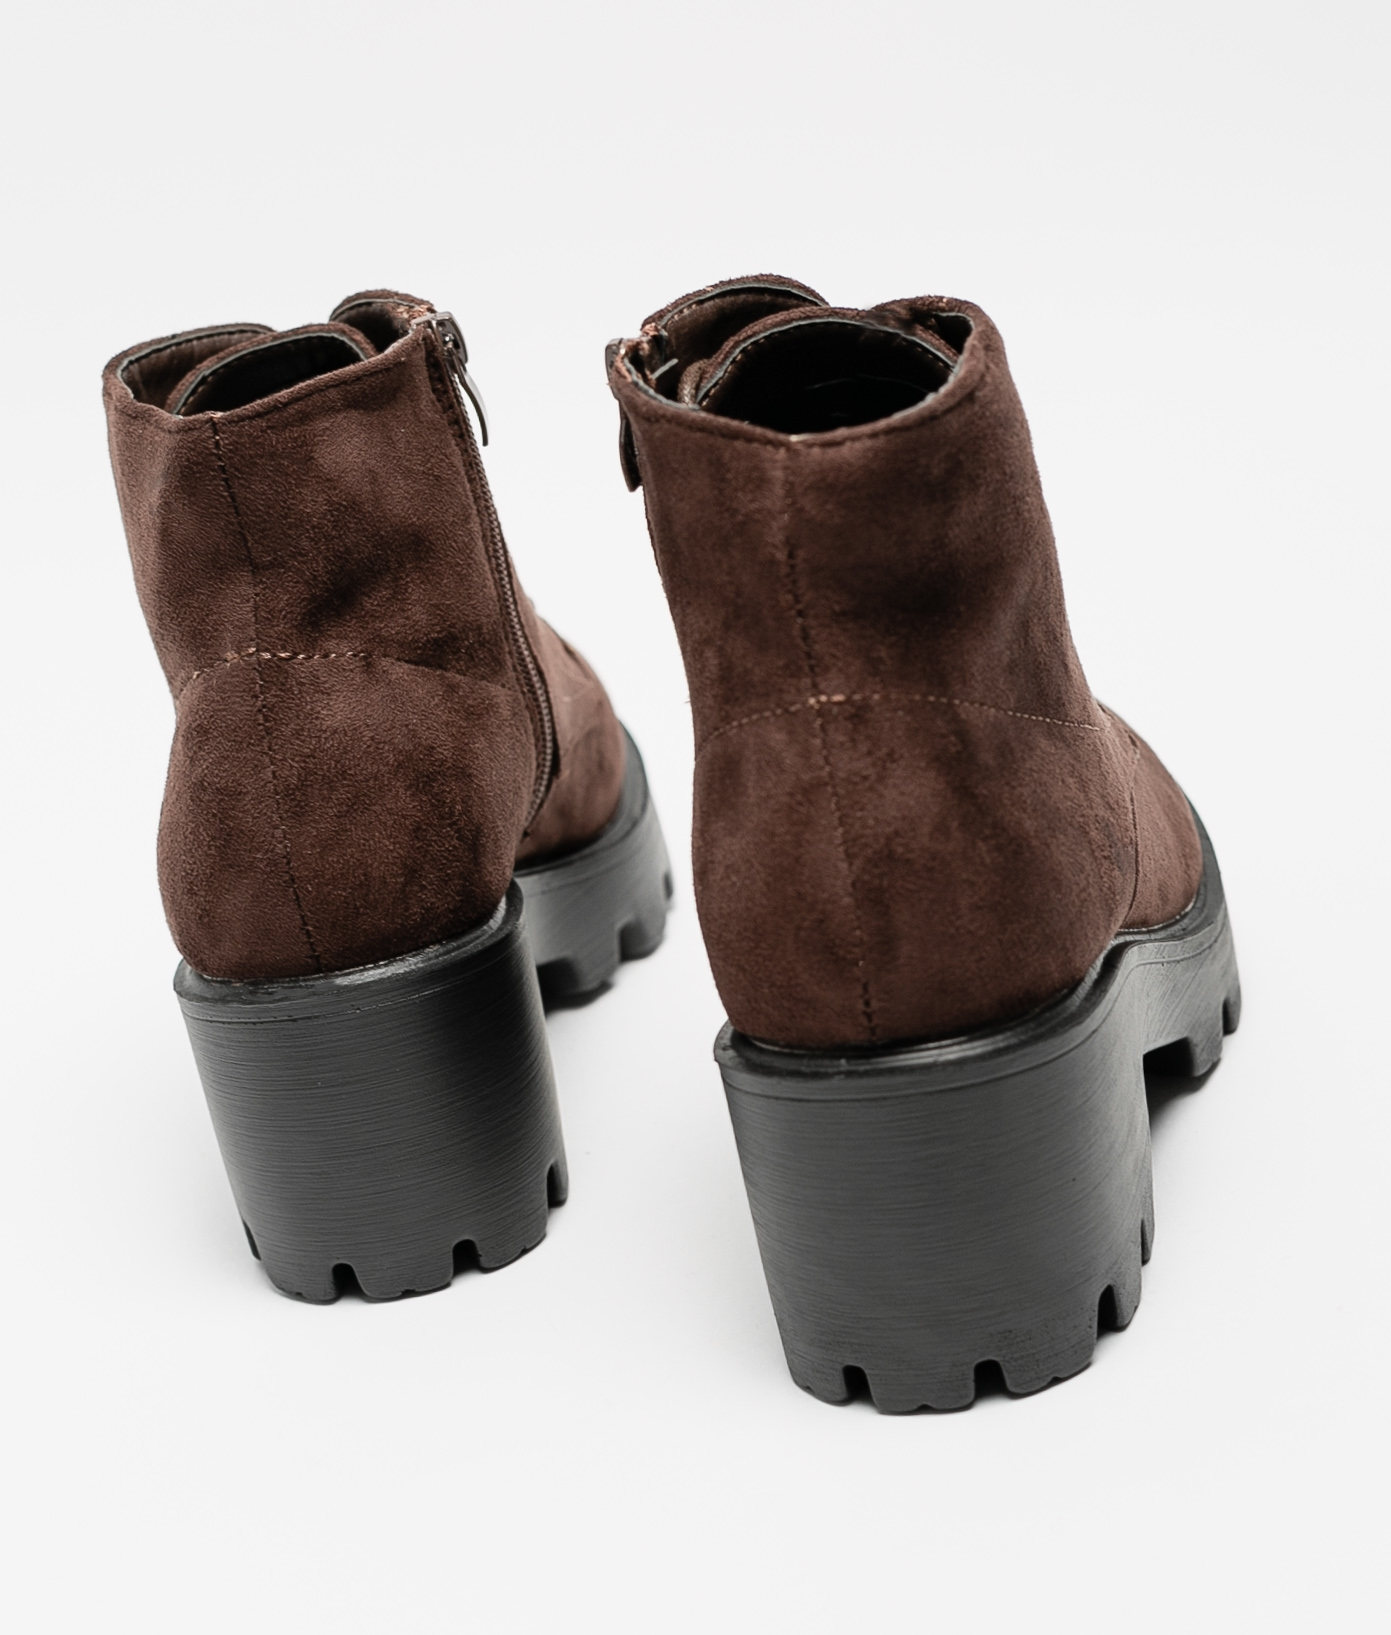 Boot Petite Sely - Marron